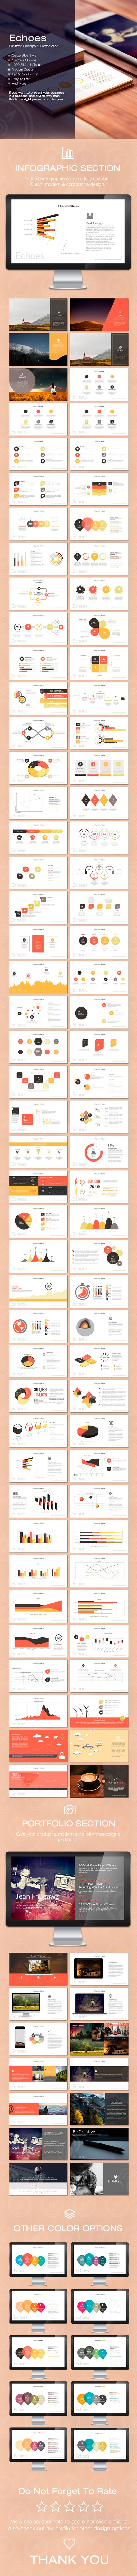 Echoes Powerpoint Template #design #slides Buy Now: http://graphicriver.net/item/echoes-powerpoint/12868260?ref=ksioks